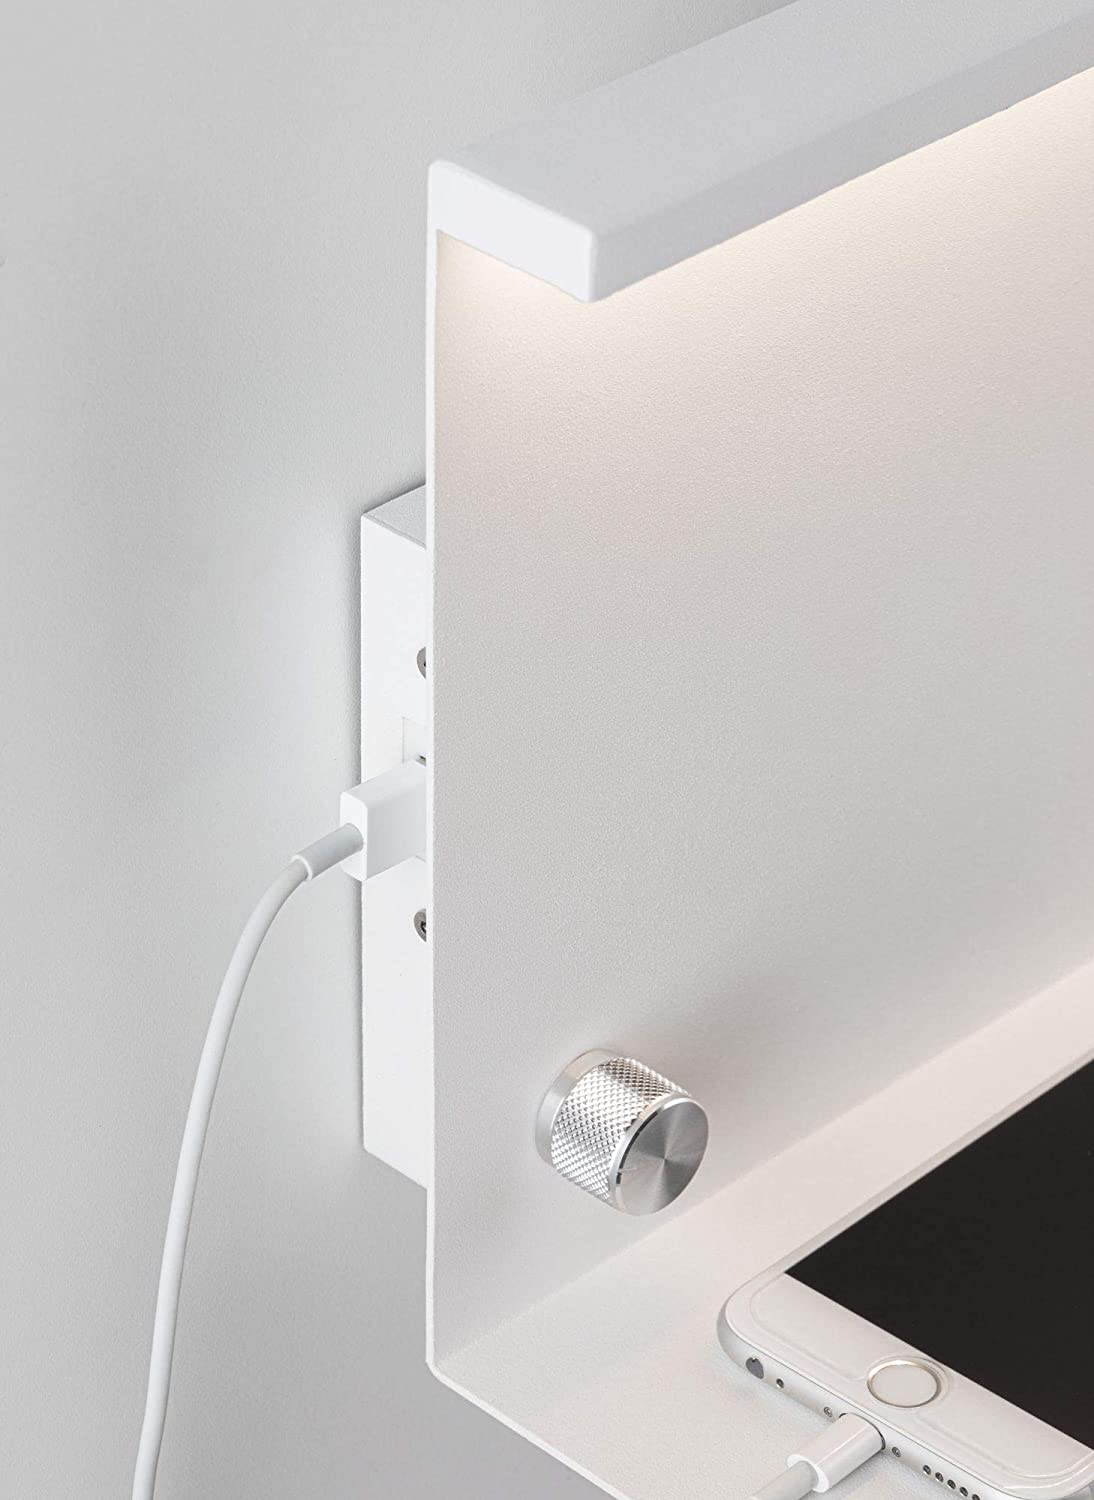 Paulmann Jarina 78916 LED de Pared con Estante Nexium